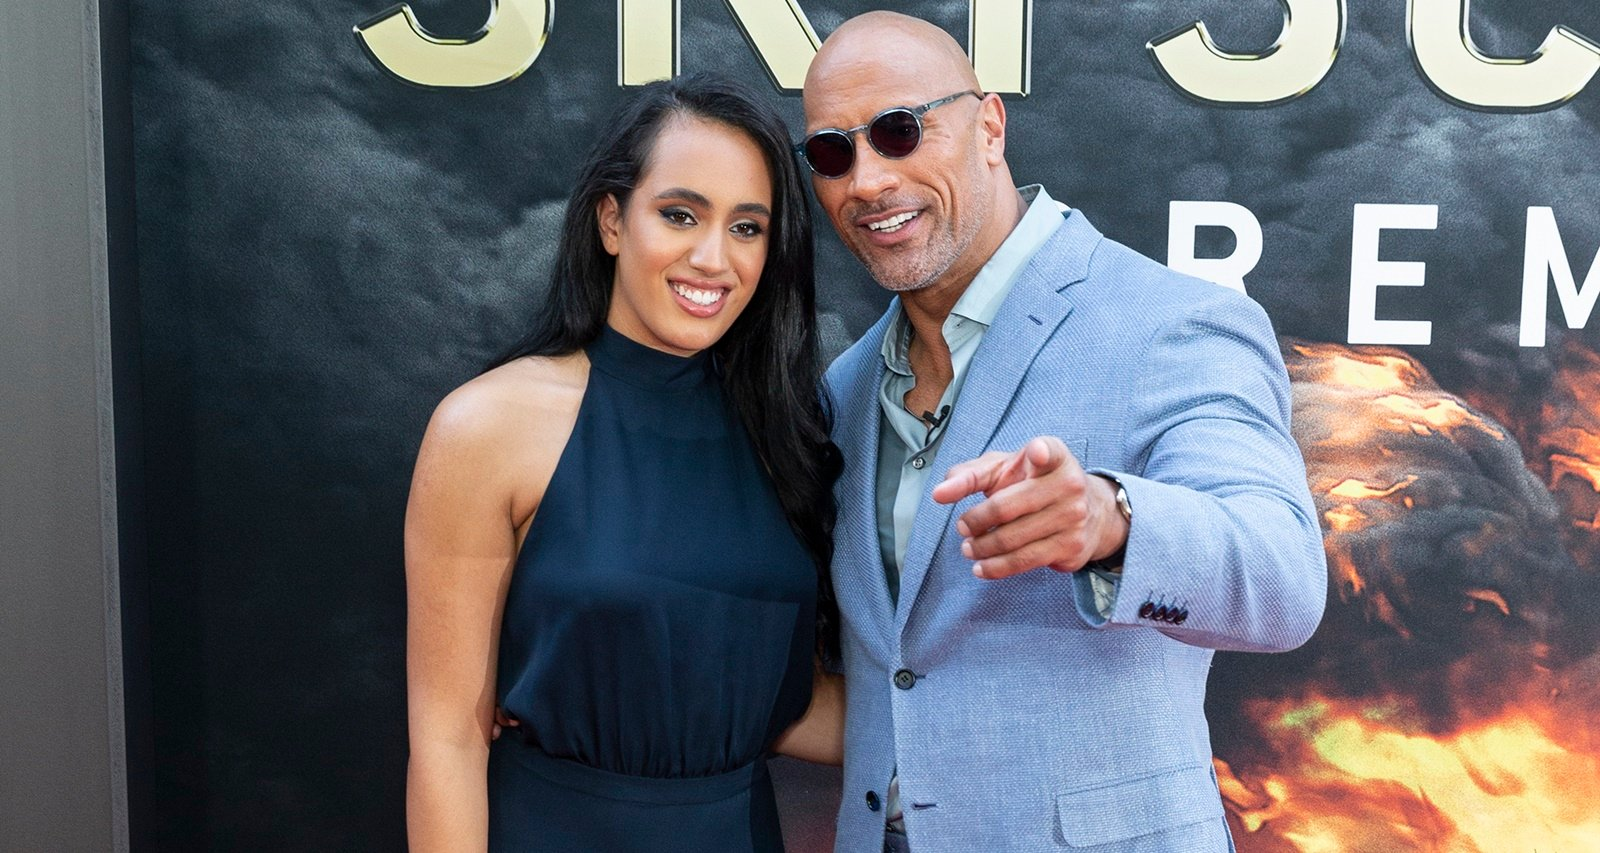 Simone Alexandra Johnson Wiki, Age and Facts About Dwayne Johnson's Daughter